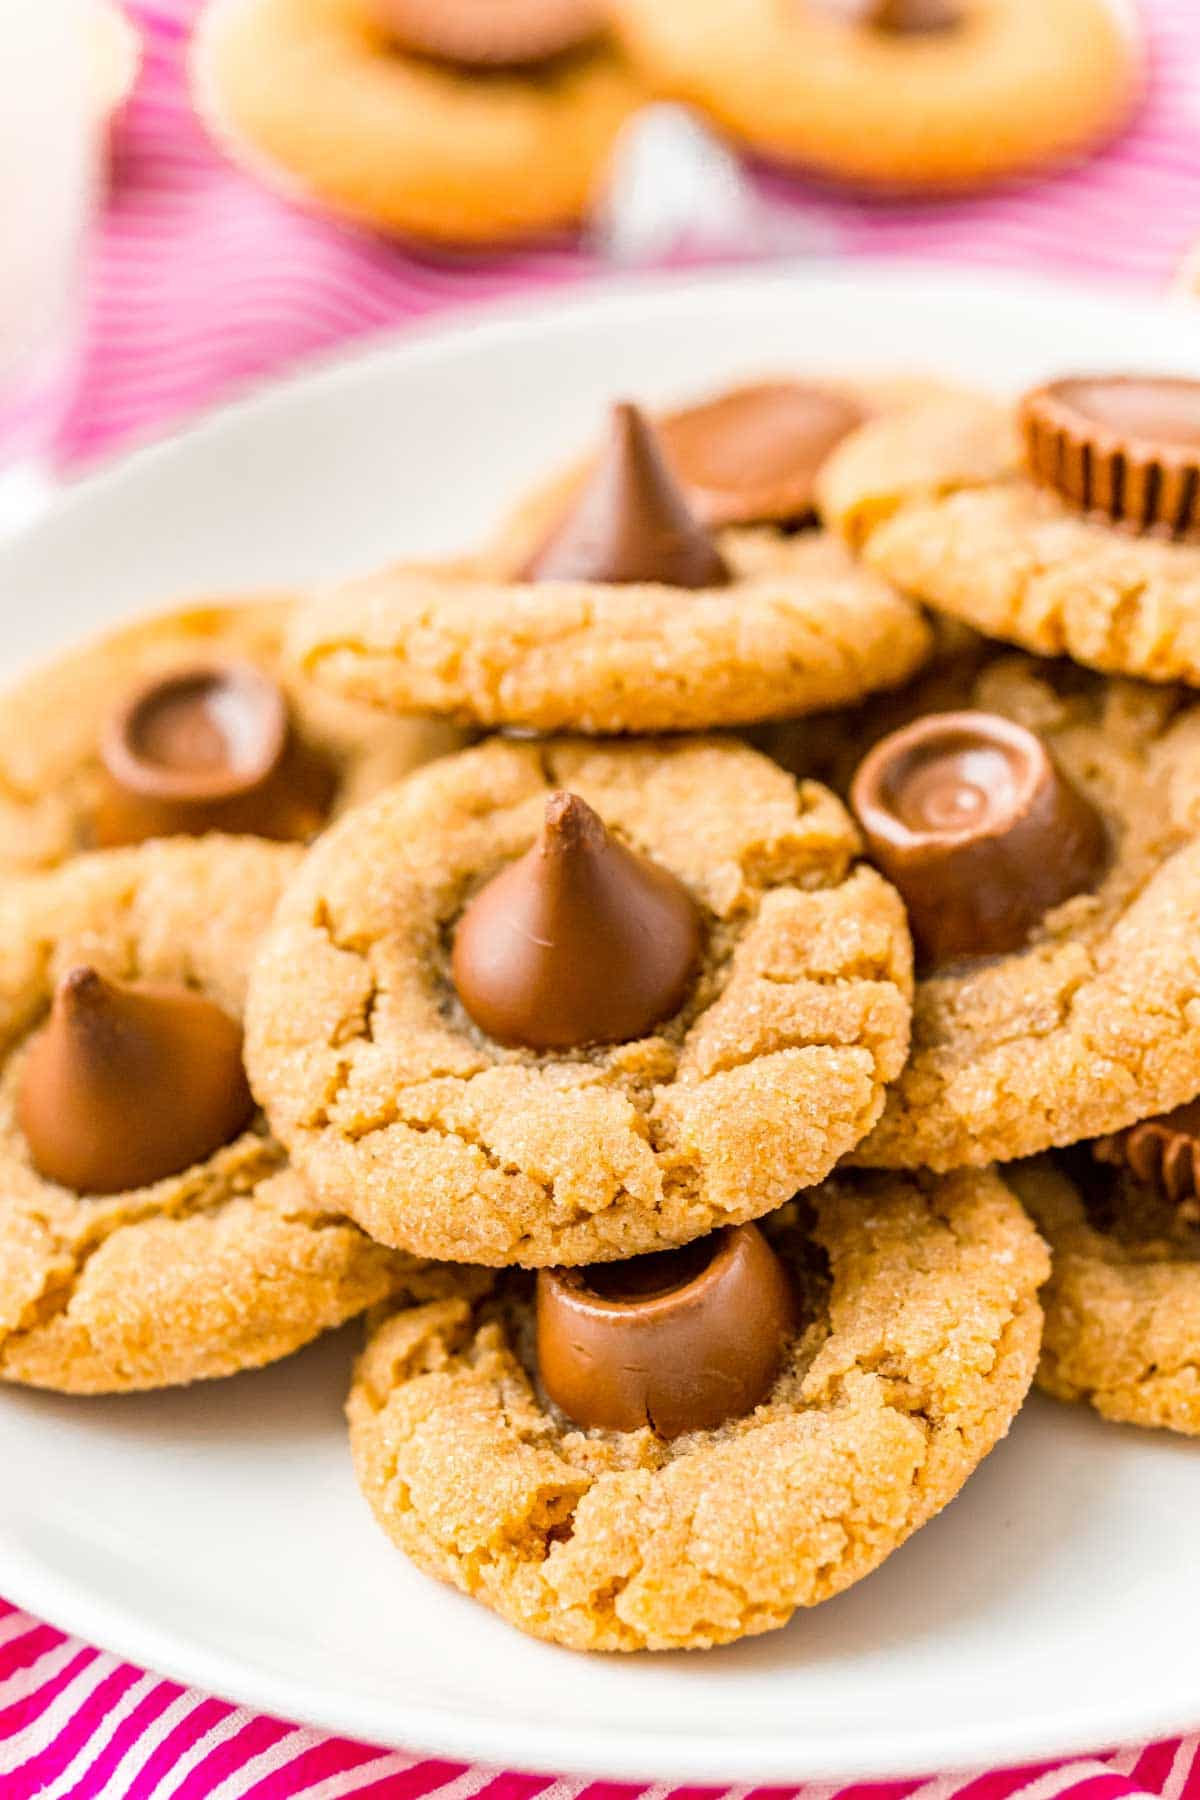 Plate full of peanut butter blossoms